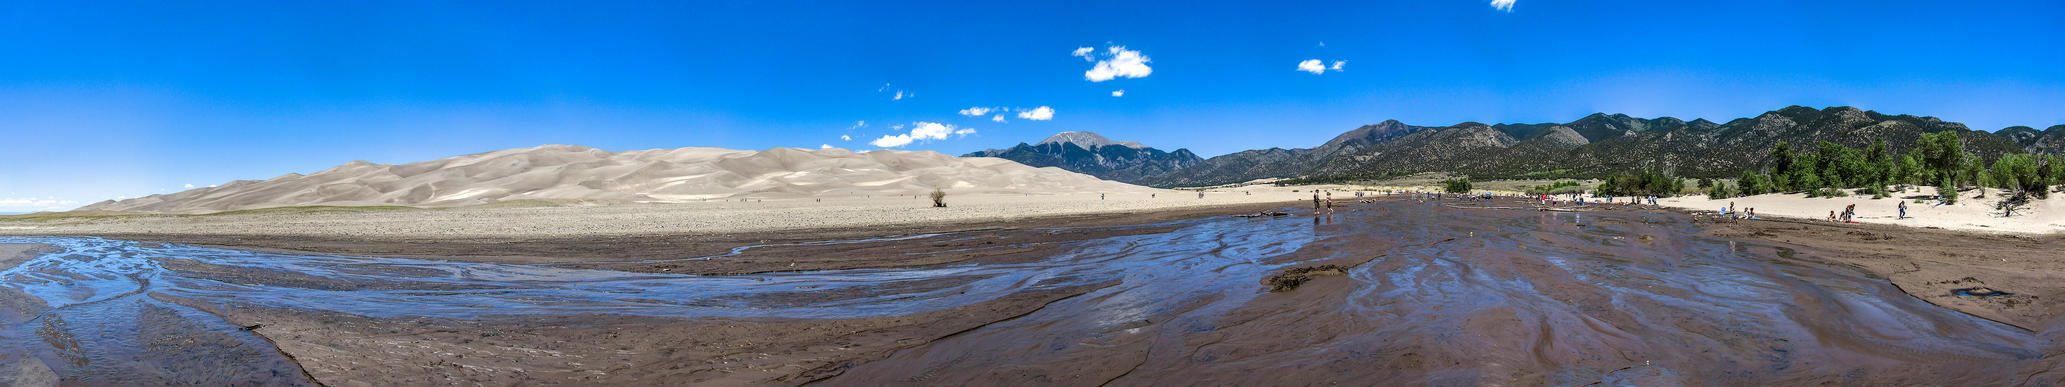 Great Sand Dunes Panorama by tim-bot